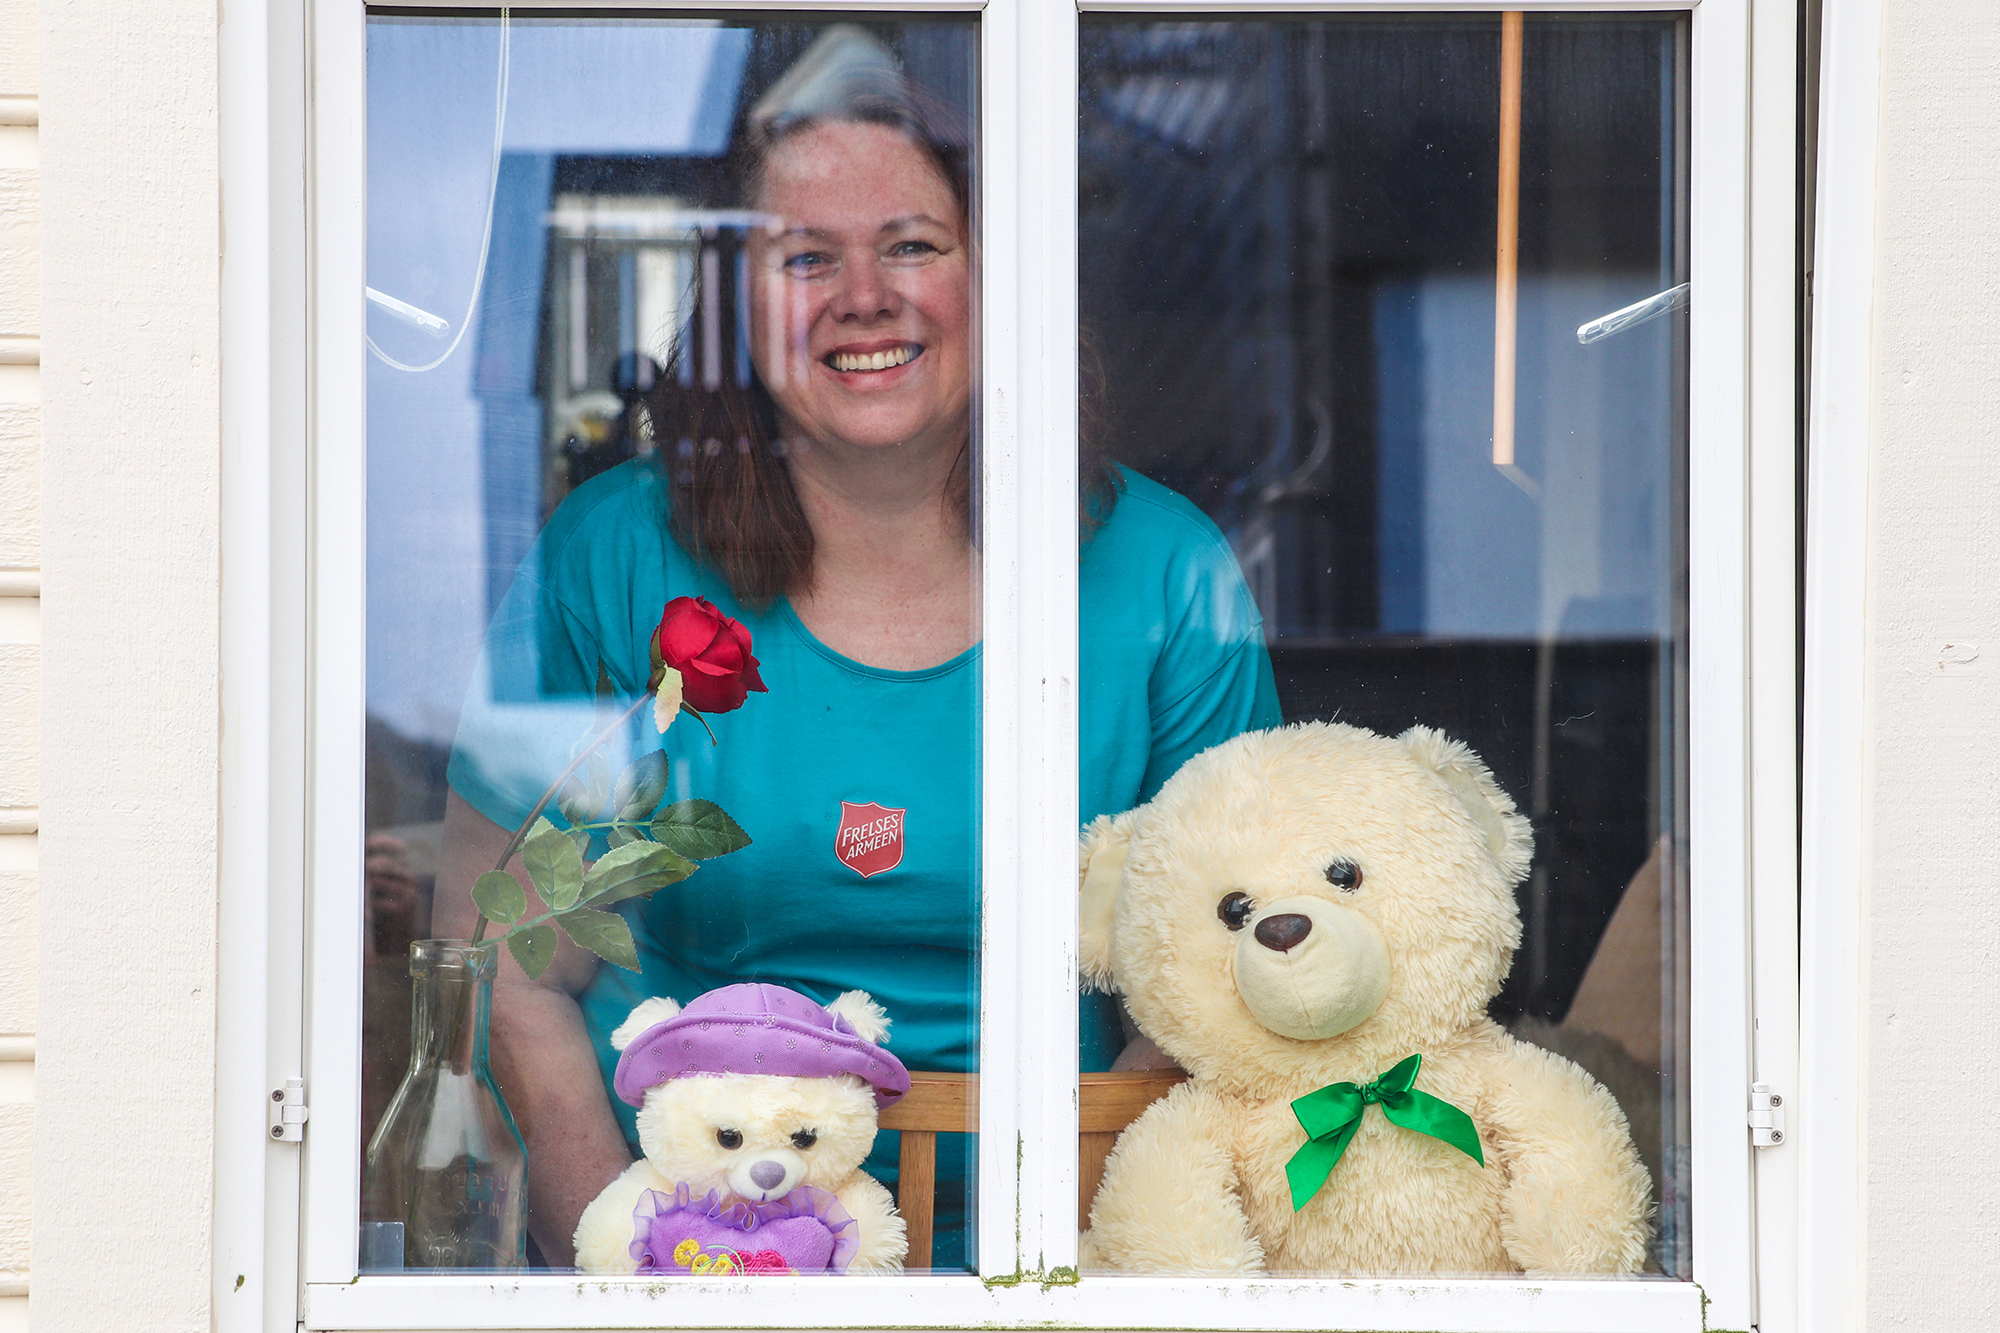 Teddy hung in Egersund